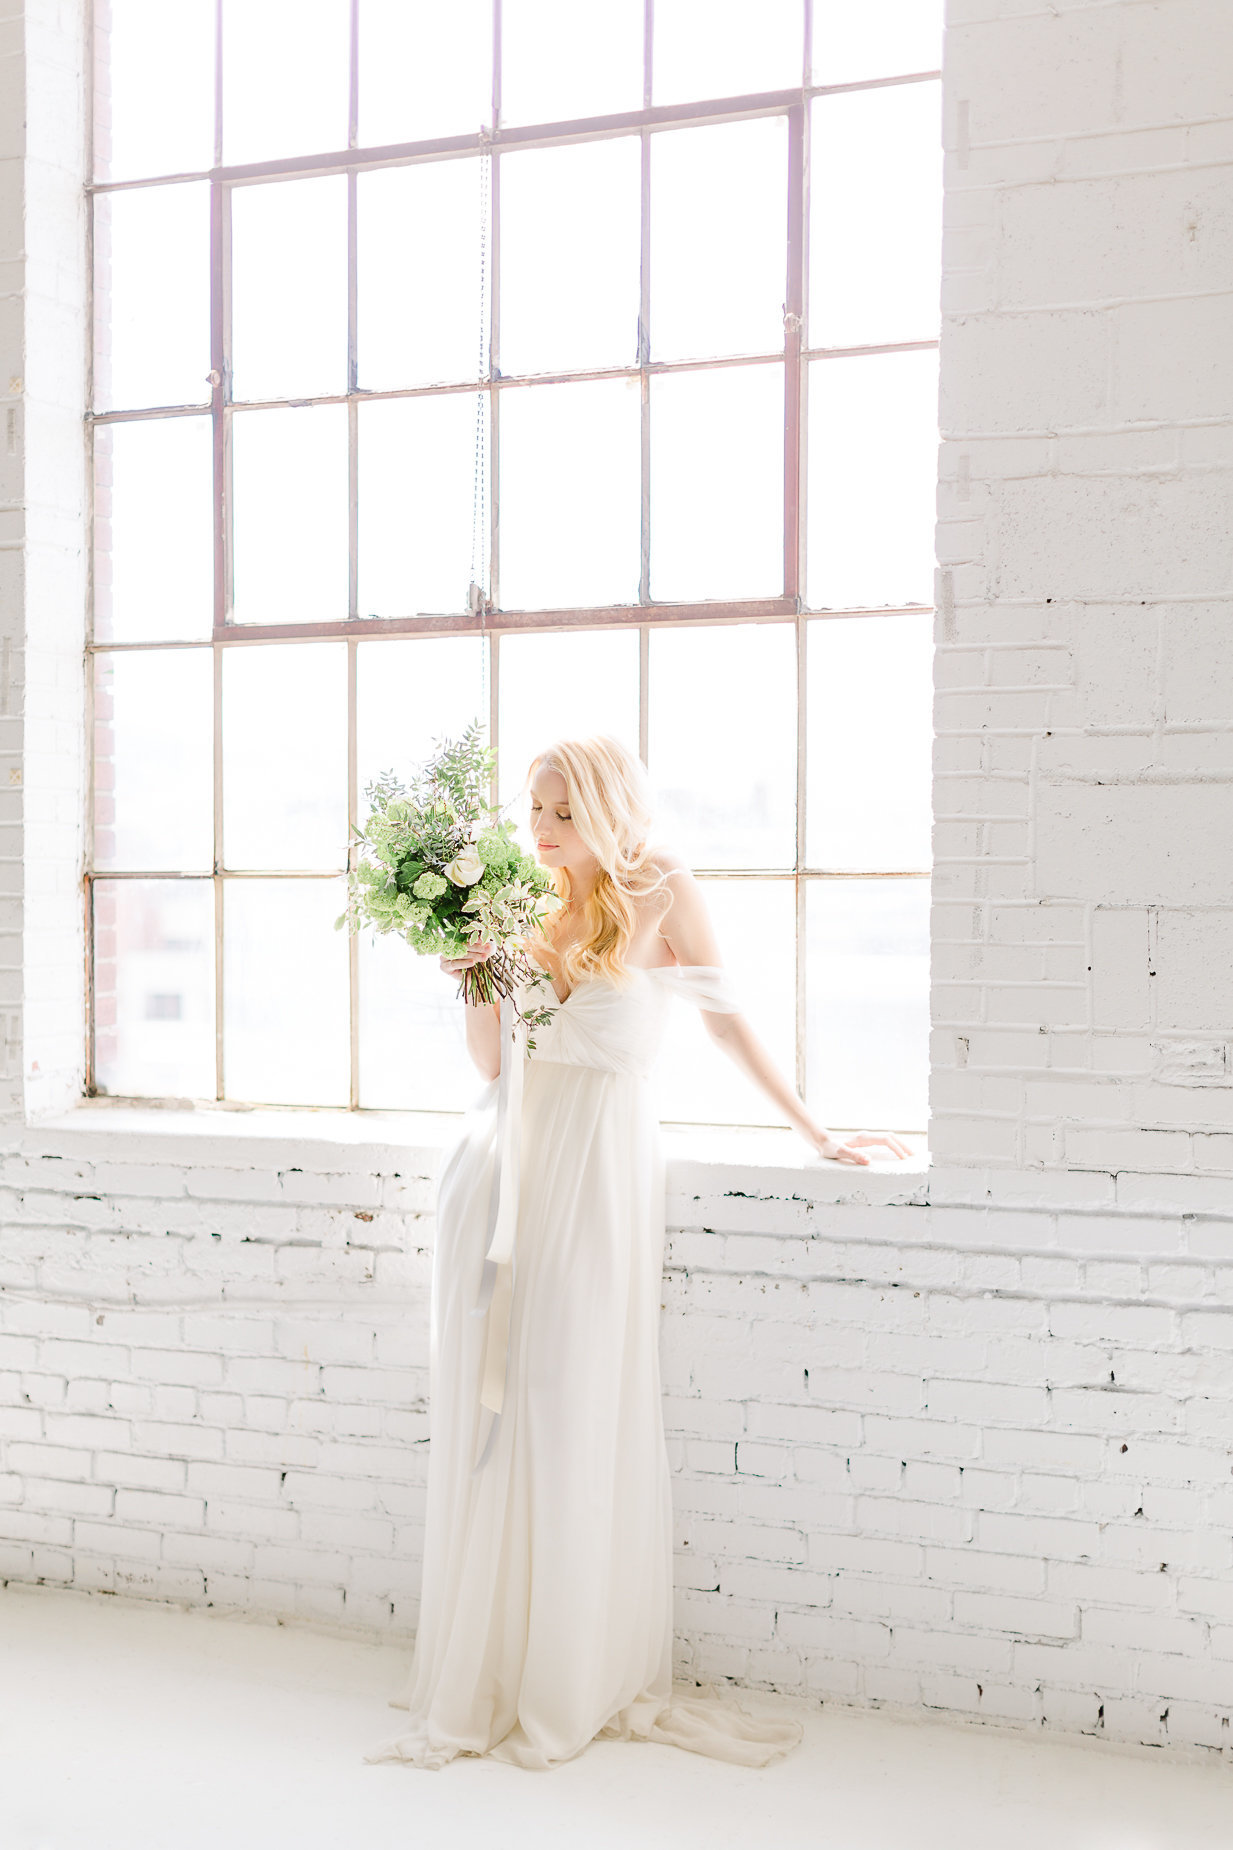 industrial-chic-and-organic-wedding-inspiration-lisa-renault-photographie-photographe-mariage-montreal-photographer-21